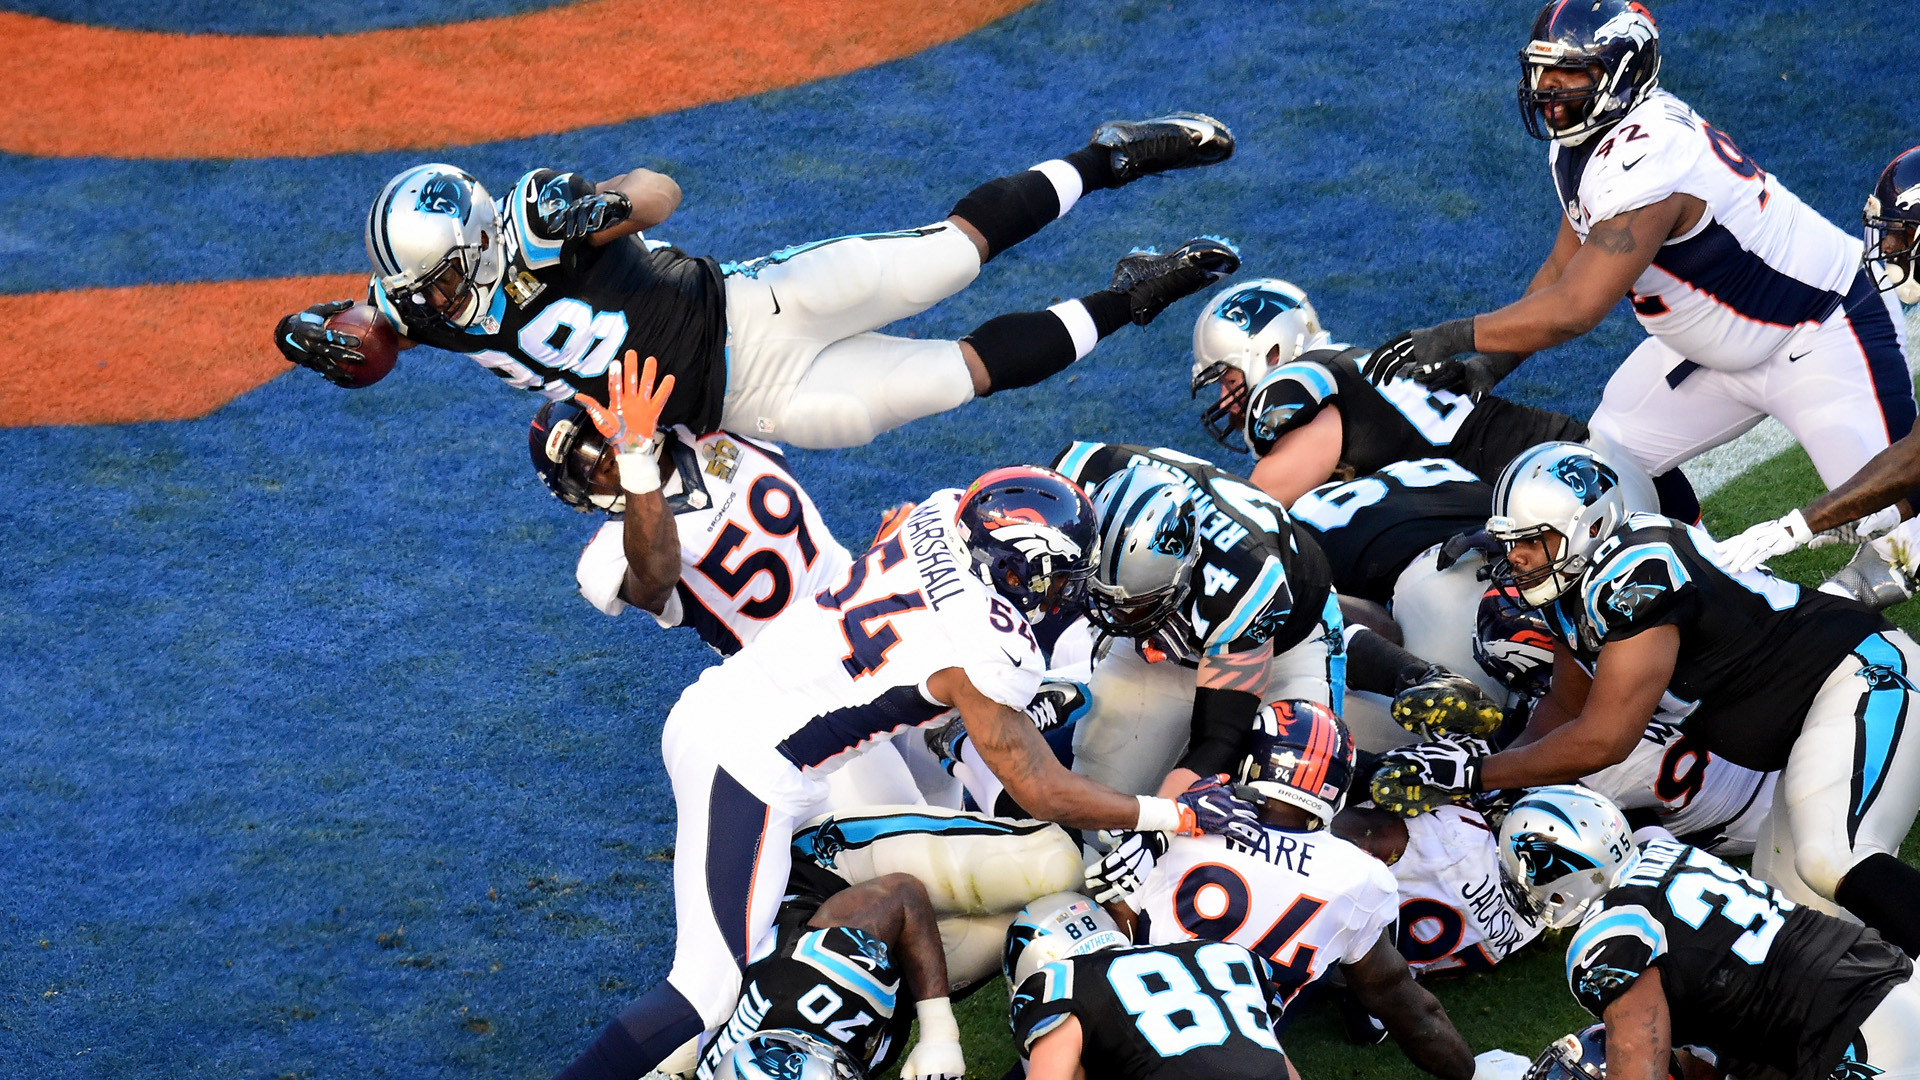 1920x1080 Highlights of Super Bowl 50, between Cam Newton's Carolina Panthers and  Peyton Manning's Denver Broncos